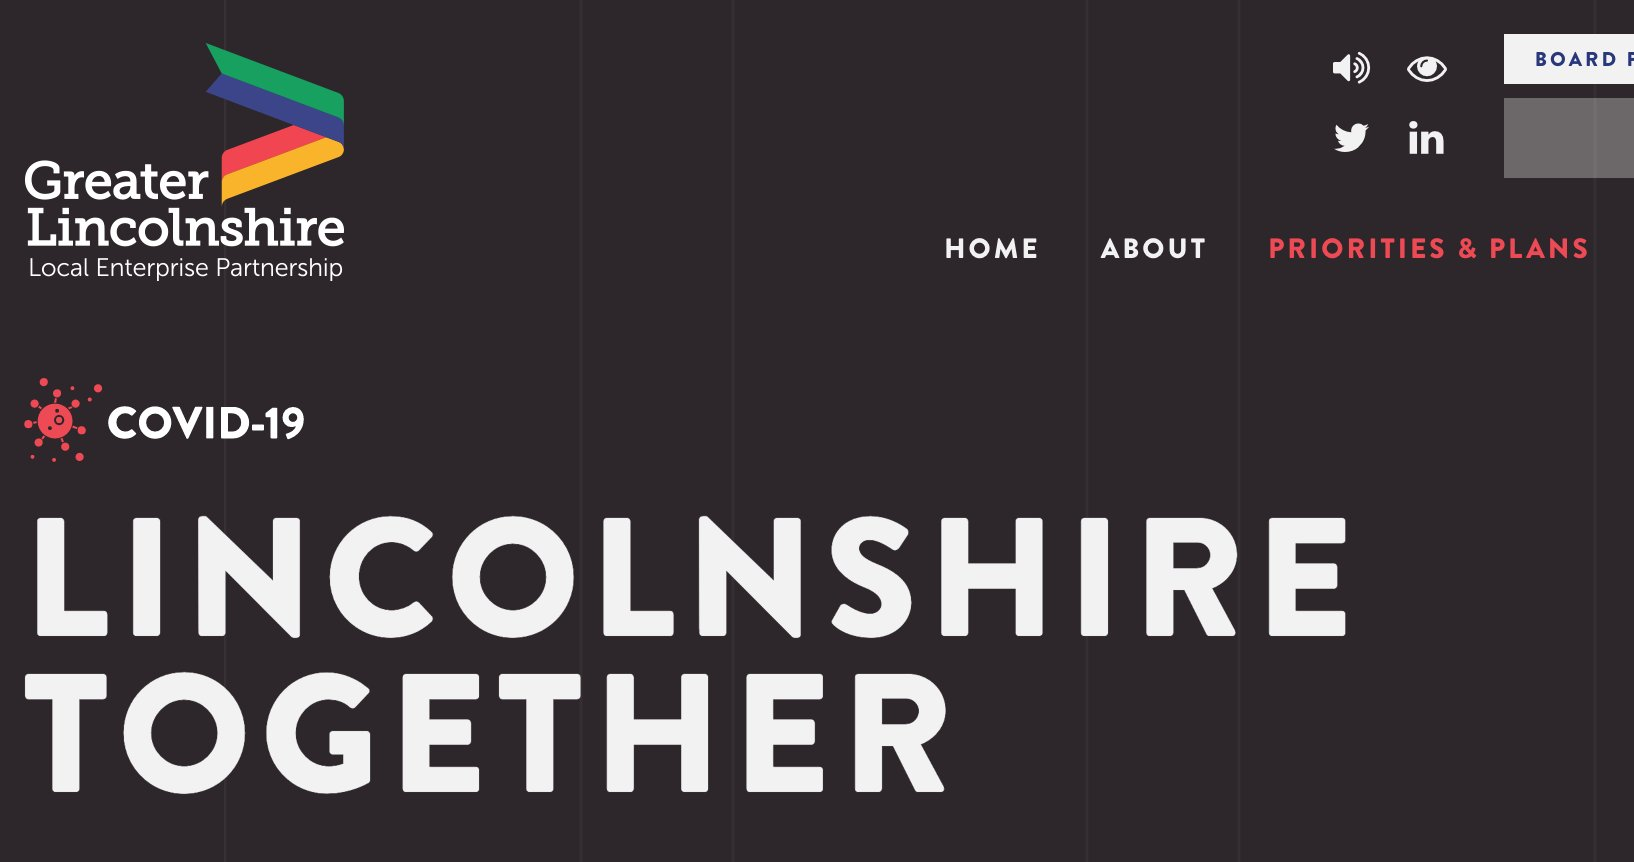 New Website to Support Lincolnshire Communities During Crisis